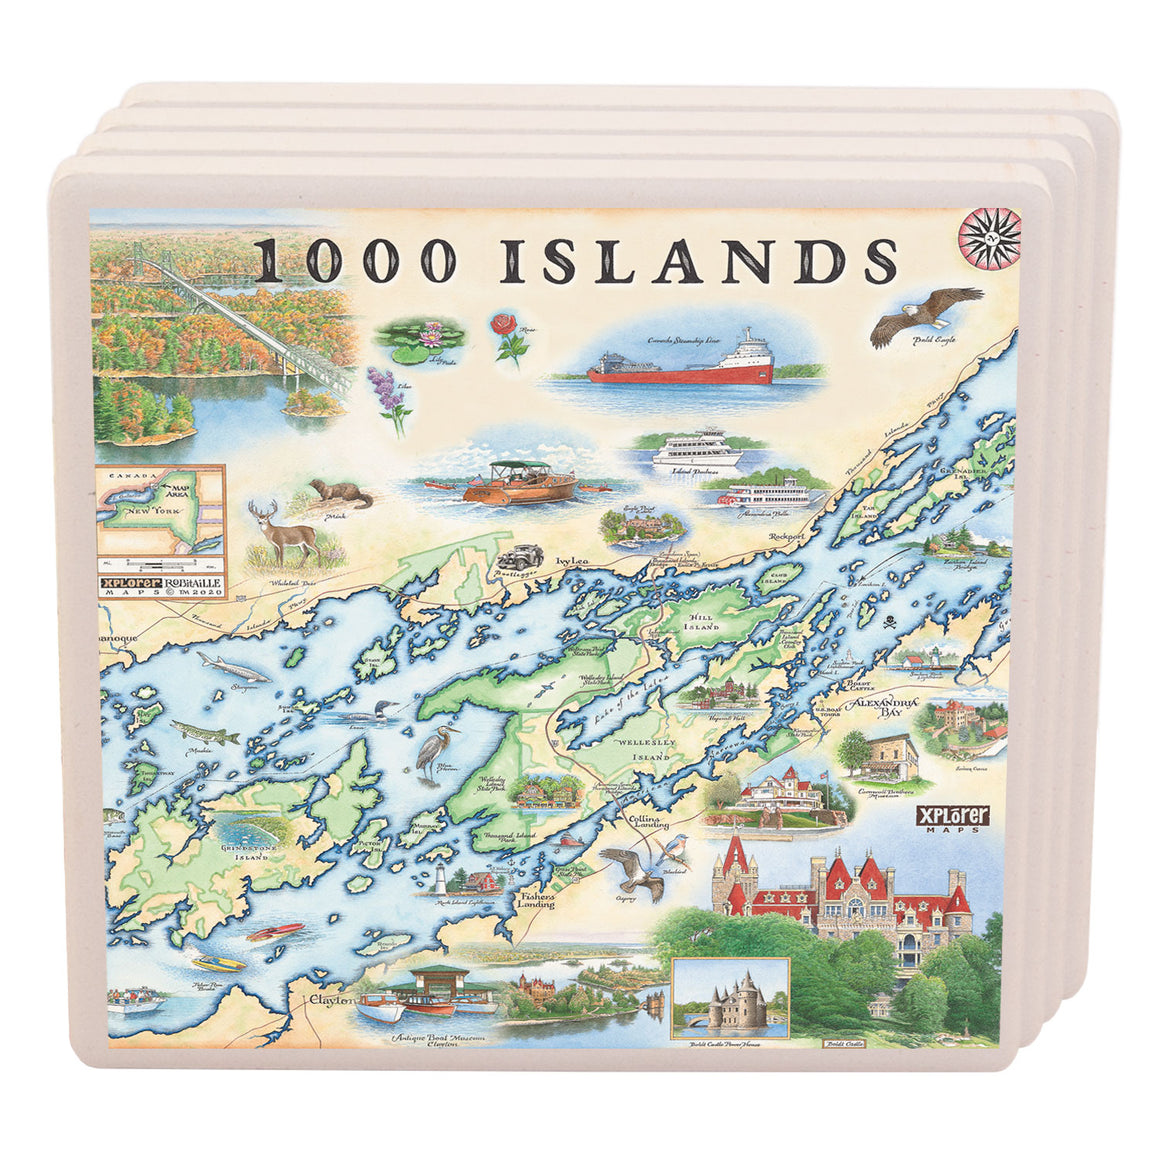 1000 Islands ceramic coaster gift set of 4